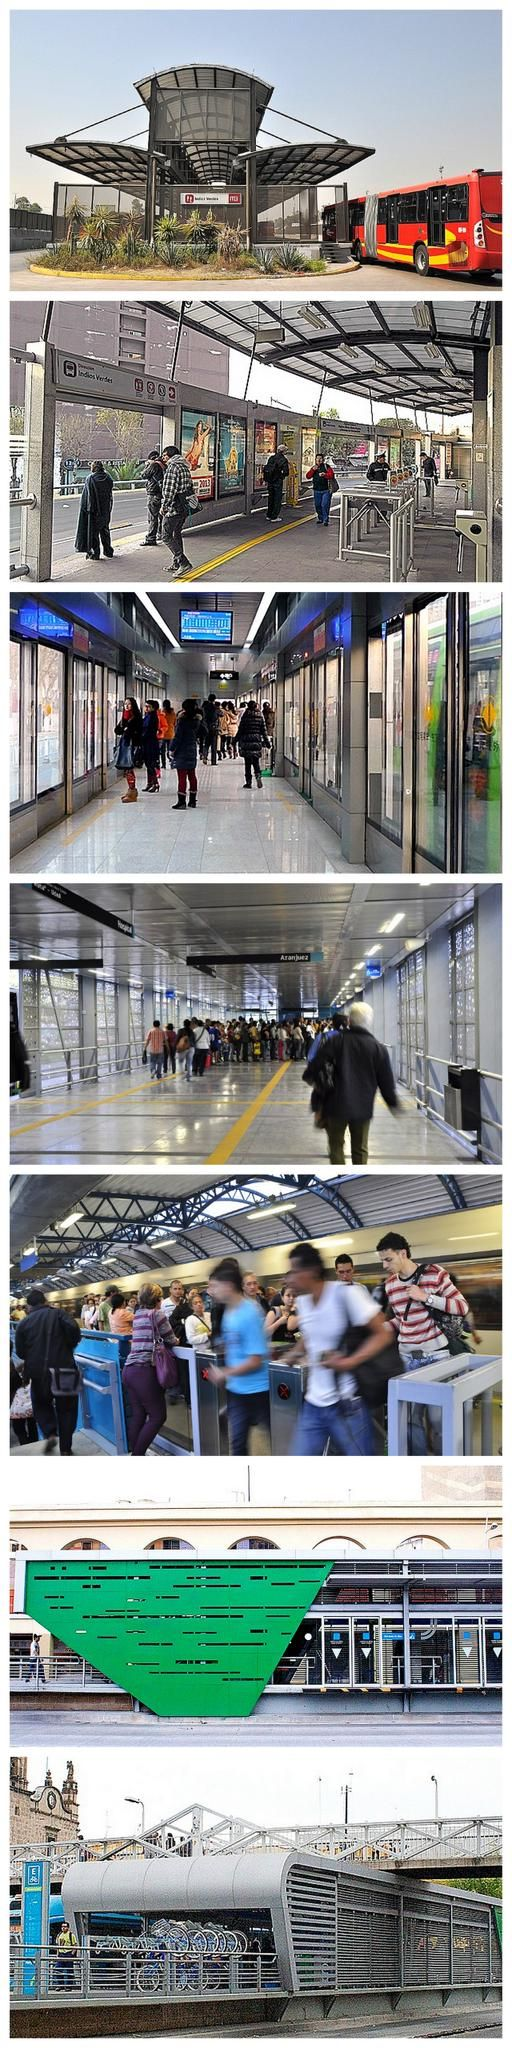 A great BRT (bus rapid transit) system feels like taking the train. Click image for link to profiles of seven great stations worldwide, and visit the slowottawa.ca boards >> https://www.pinterest.com/slowottawa/